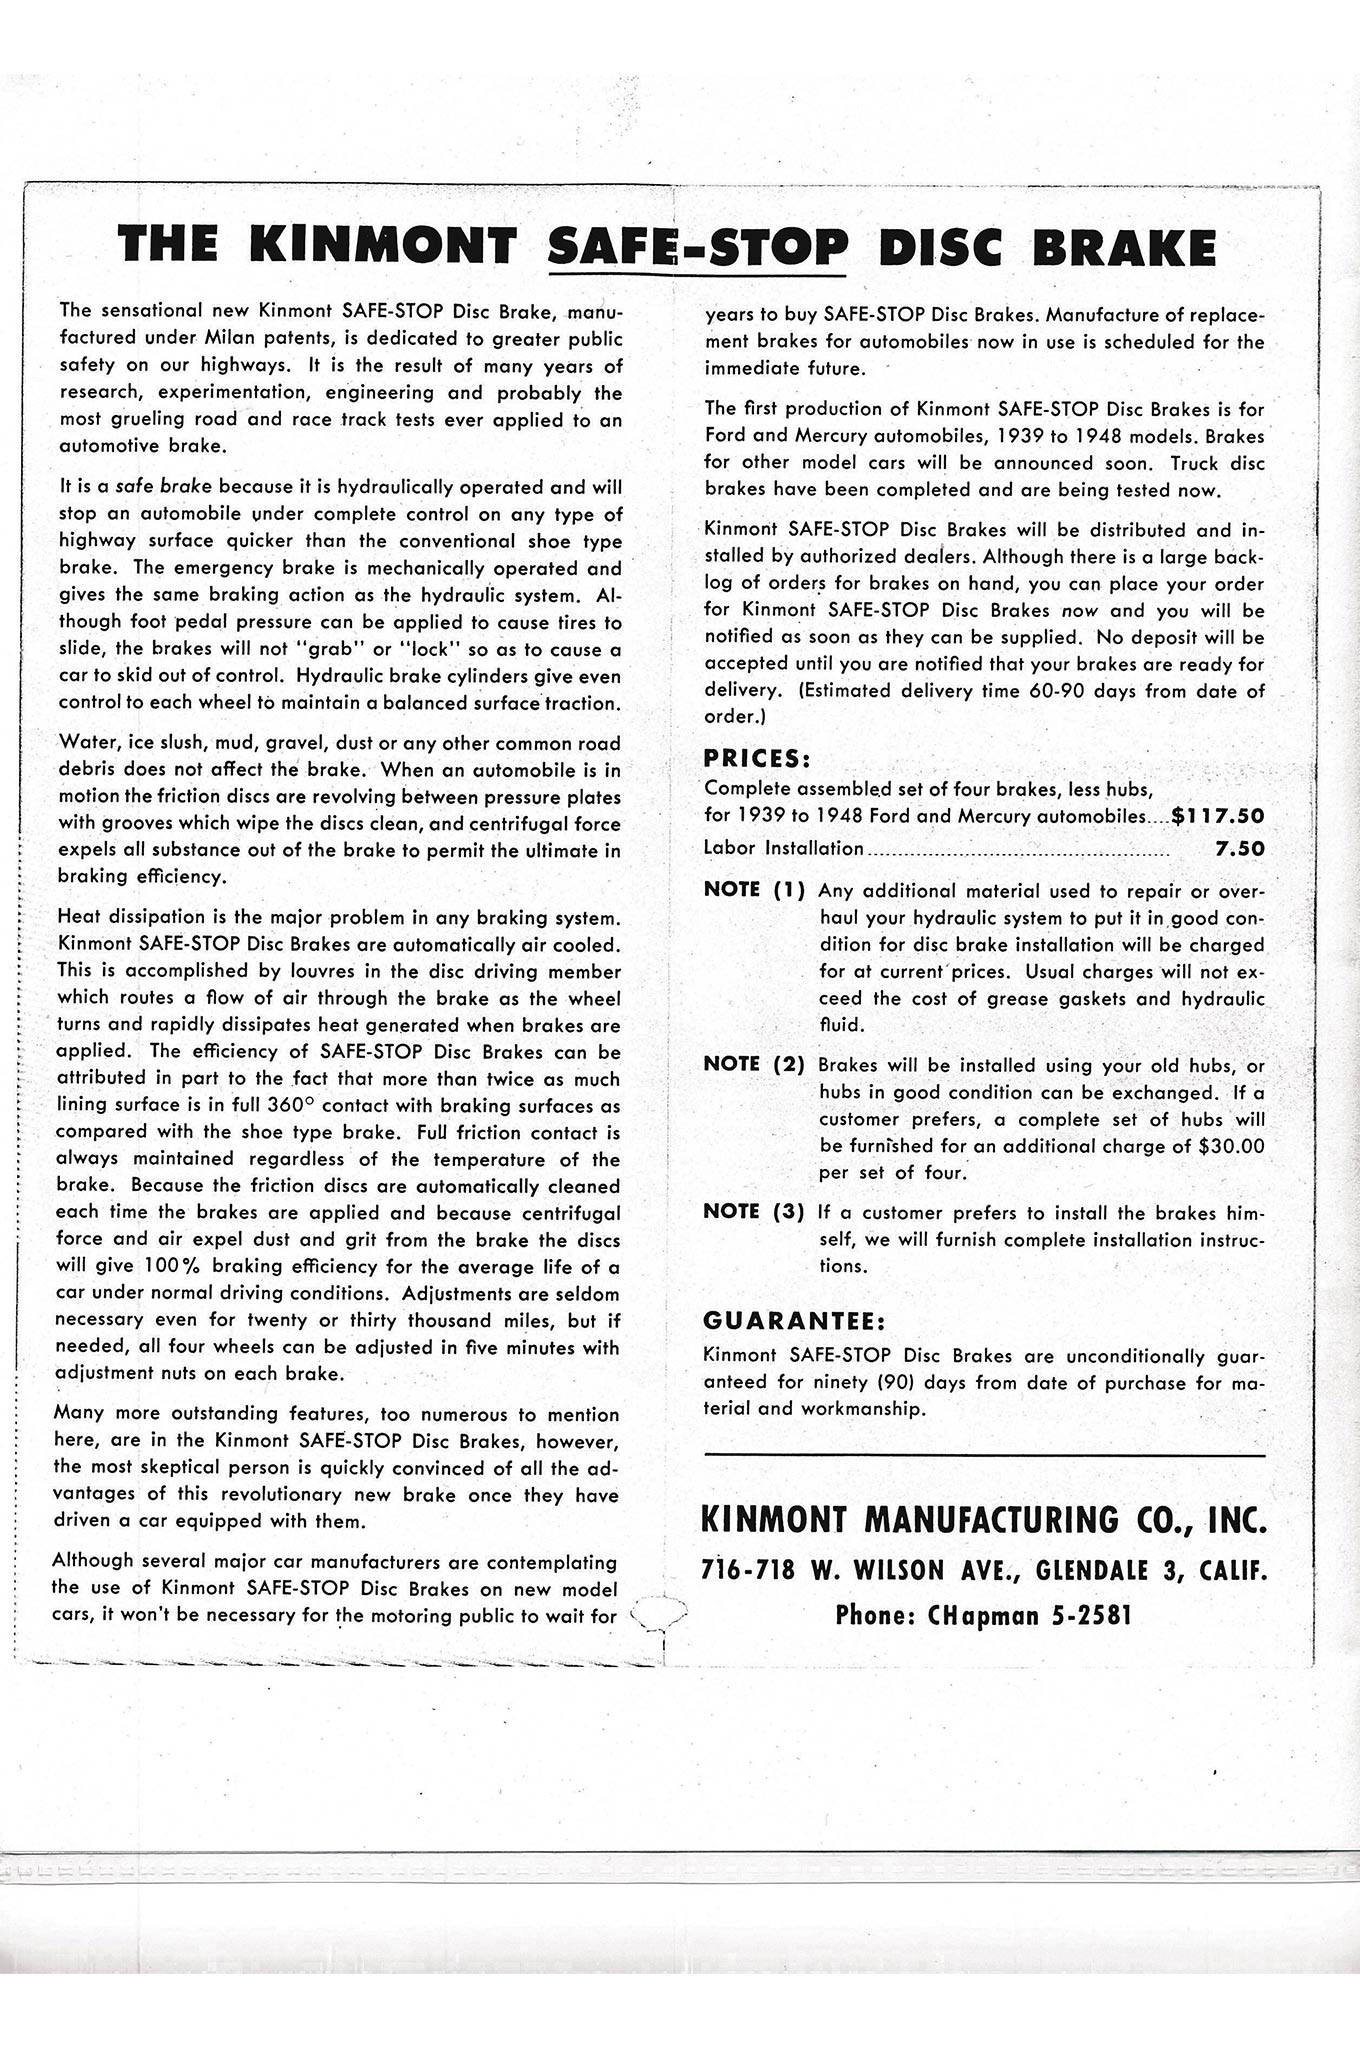 This page from a Kinmont brochure showed the original price of the brakes was $125 ($117.50 plus $7.50 handling) for a set of four, a figure verified by Dick Hulse. But in March and June 1949, respectively, Bell Auto Parts' half-page ads in Hot Rod magazine were offering full sets of Kinmonts, for '40-48 Fords and Mercurys, priced at just $52. They had to be losing money on every set. Wouldn't Roy Richter be astonished to learn they sell for $12,000 today?